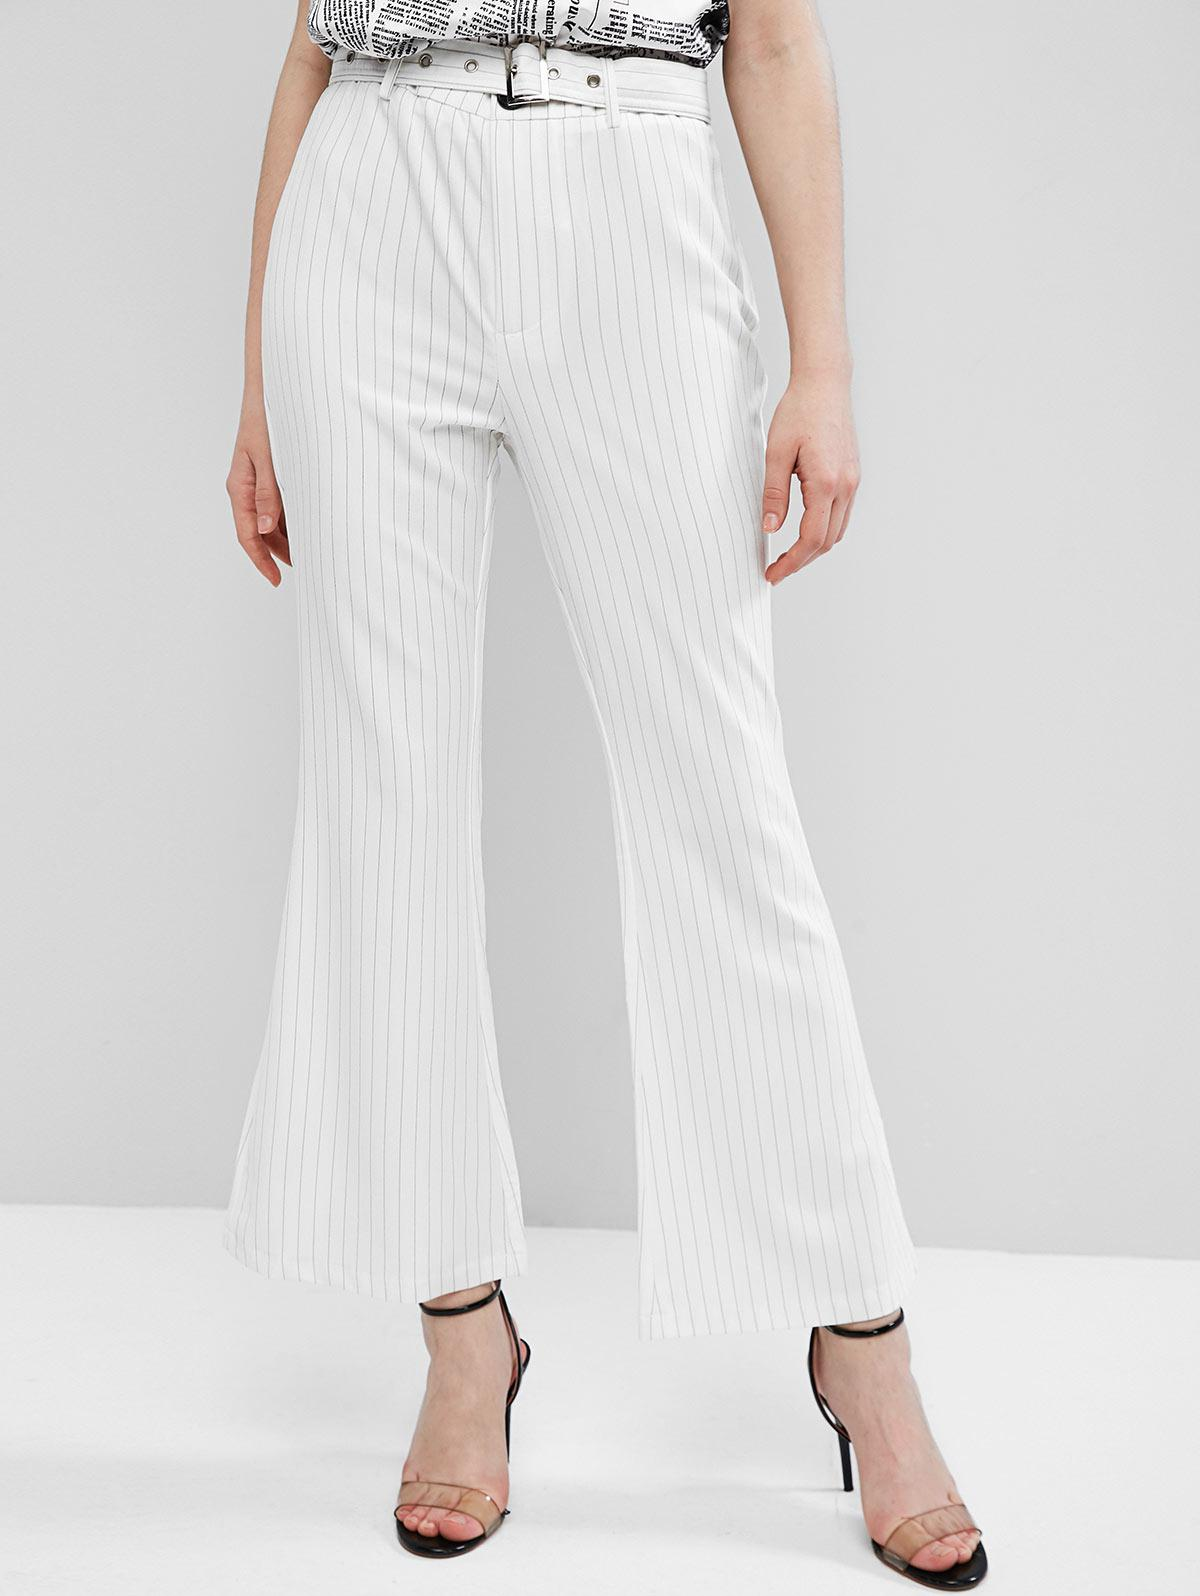 ZAFUL Striped Belted Pocket Boot Cut Pants